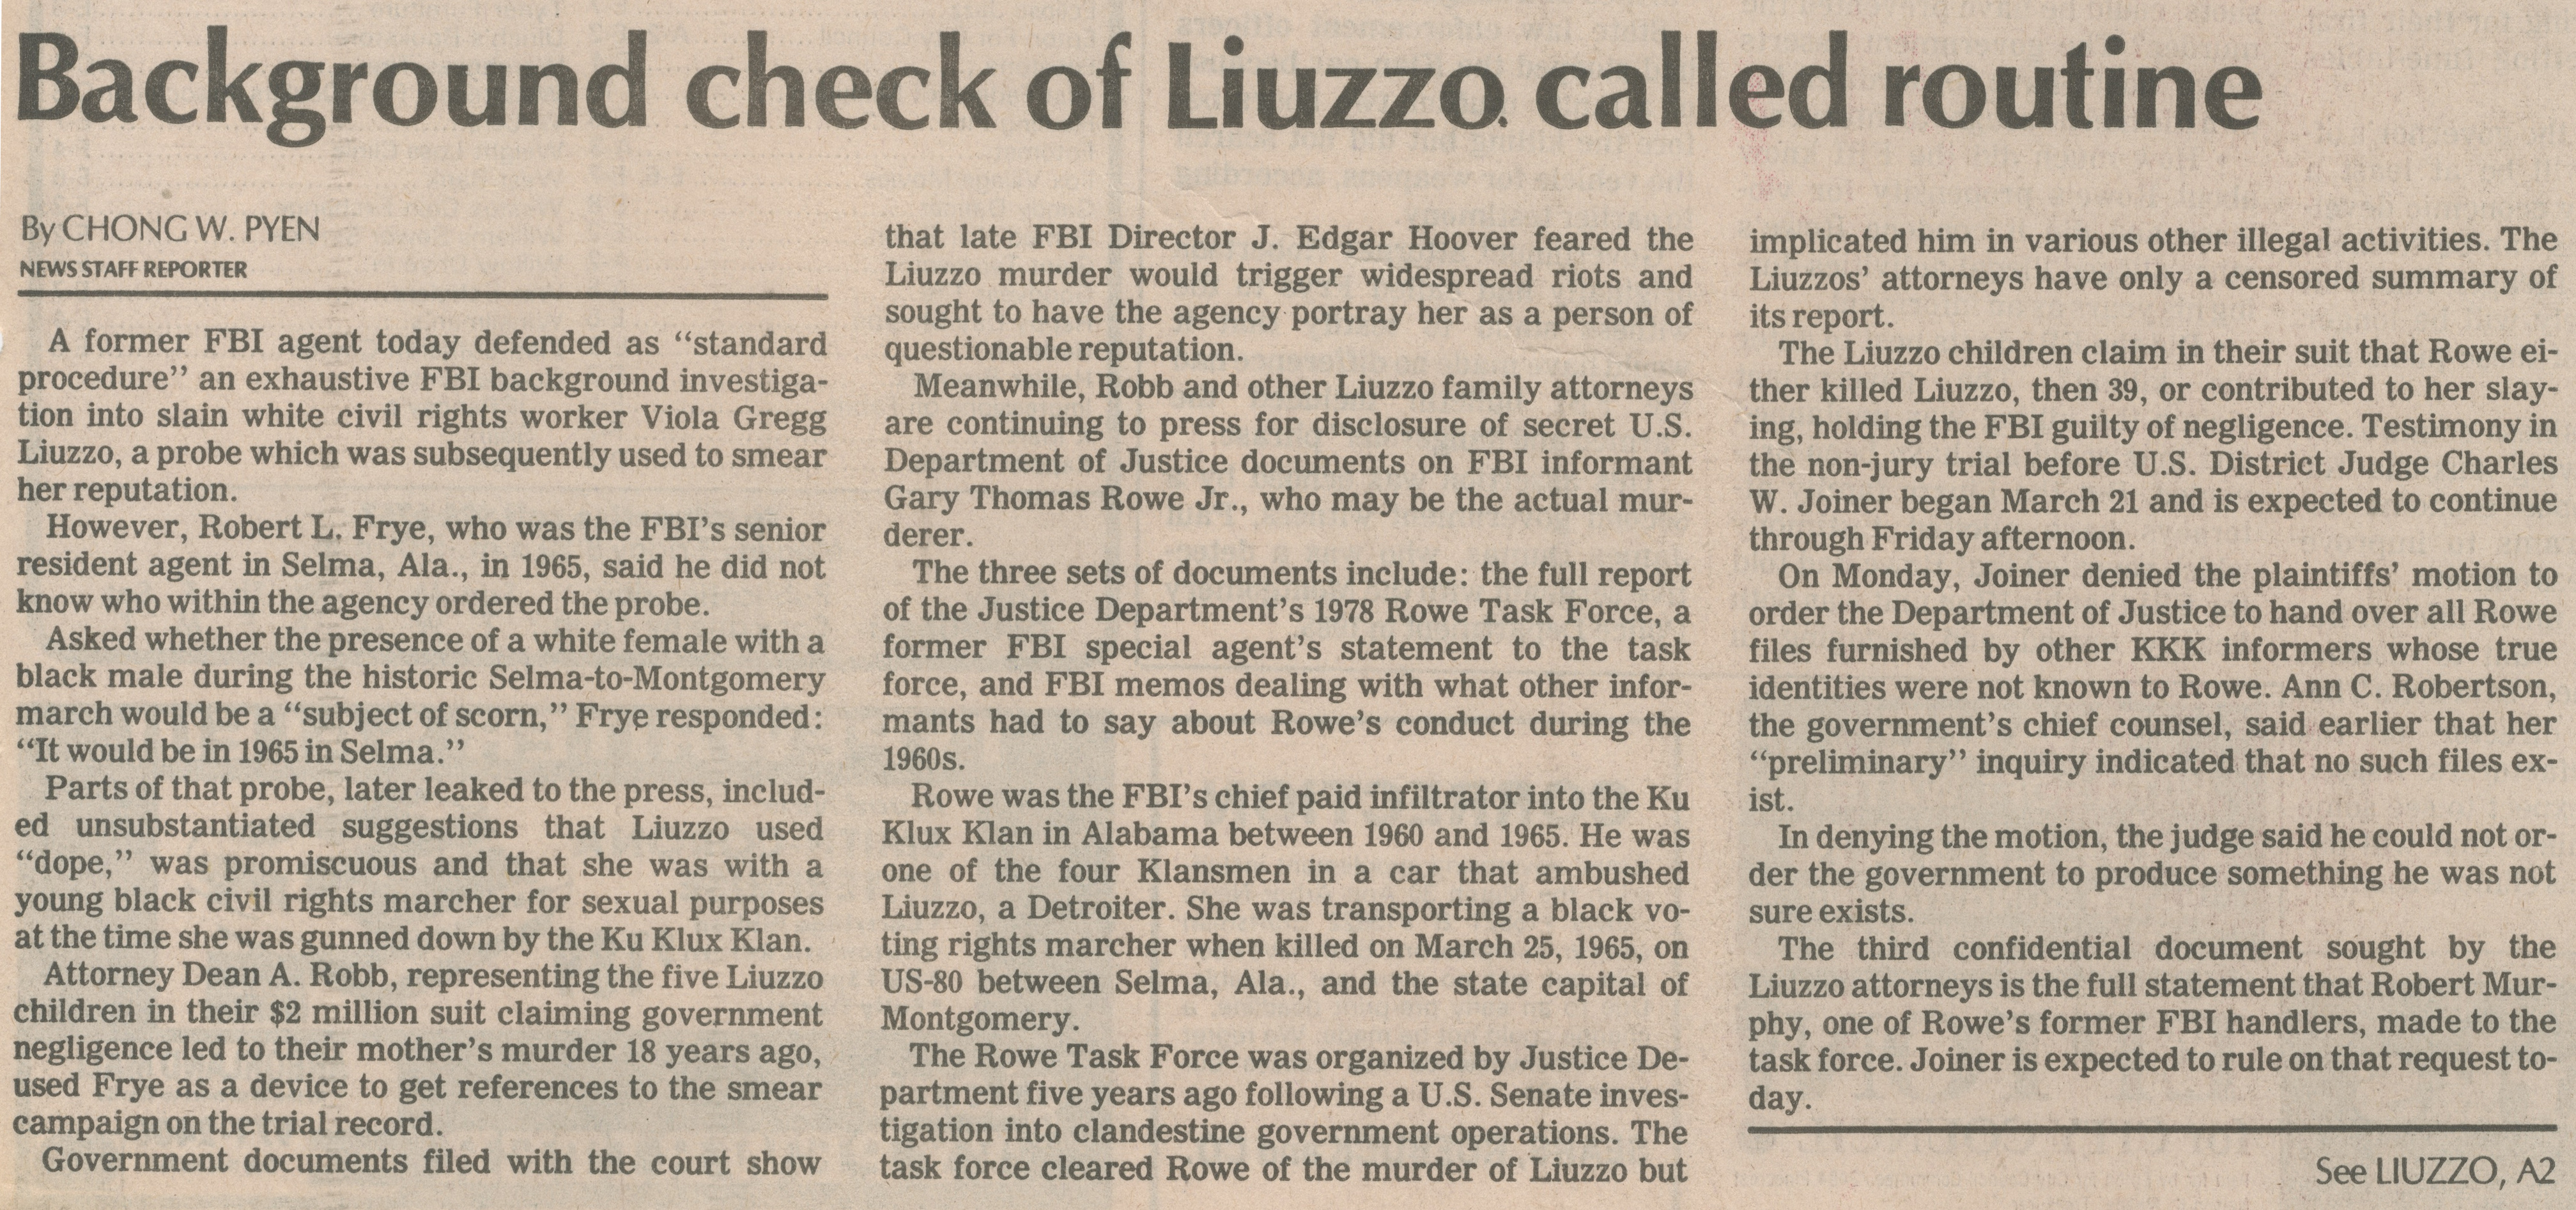 Background Check Of Liuzzo Called Routine image